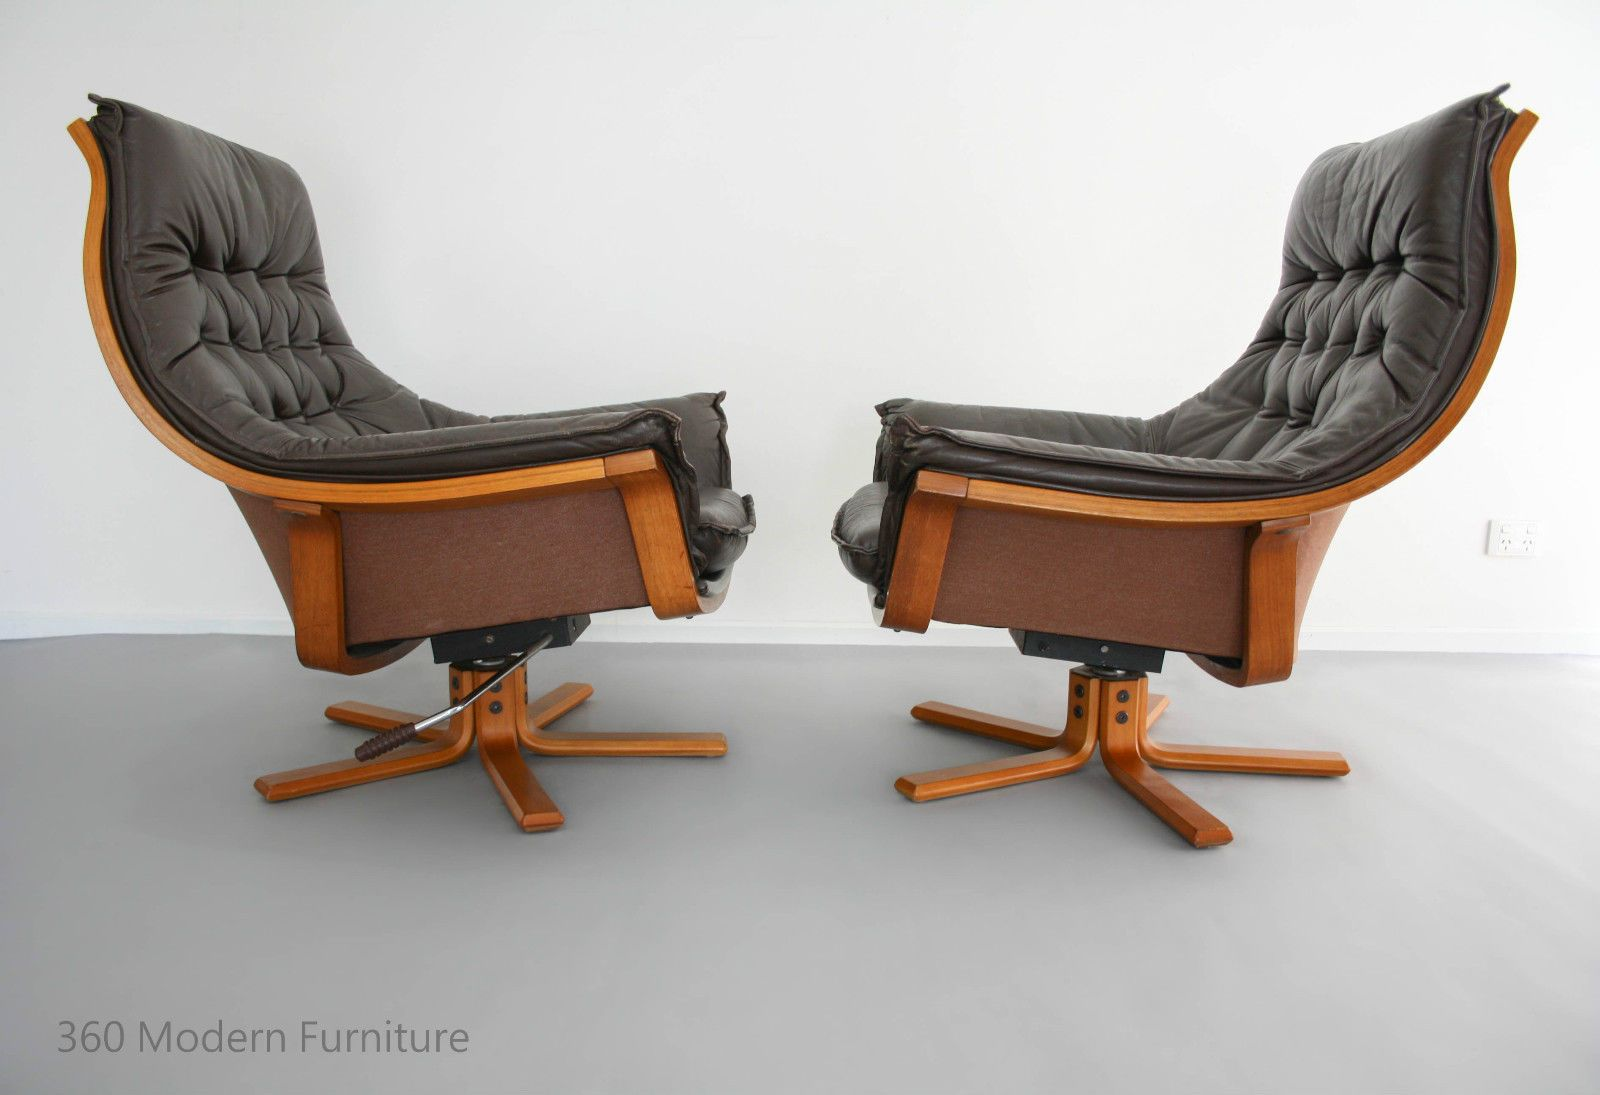 Charming MID Century Armchairs X2 Danish Deluxe Leather Swivel Rocker Recliner  Bentwood Retro Vintage Lounge Chair Pair Awesome Design